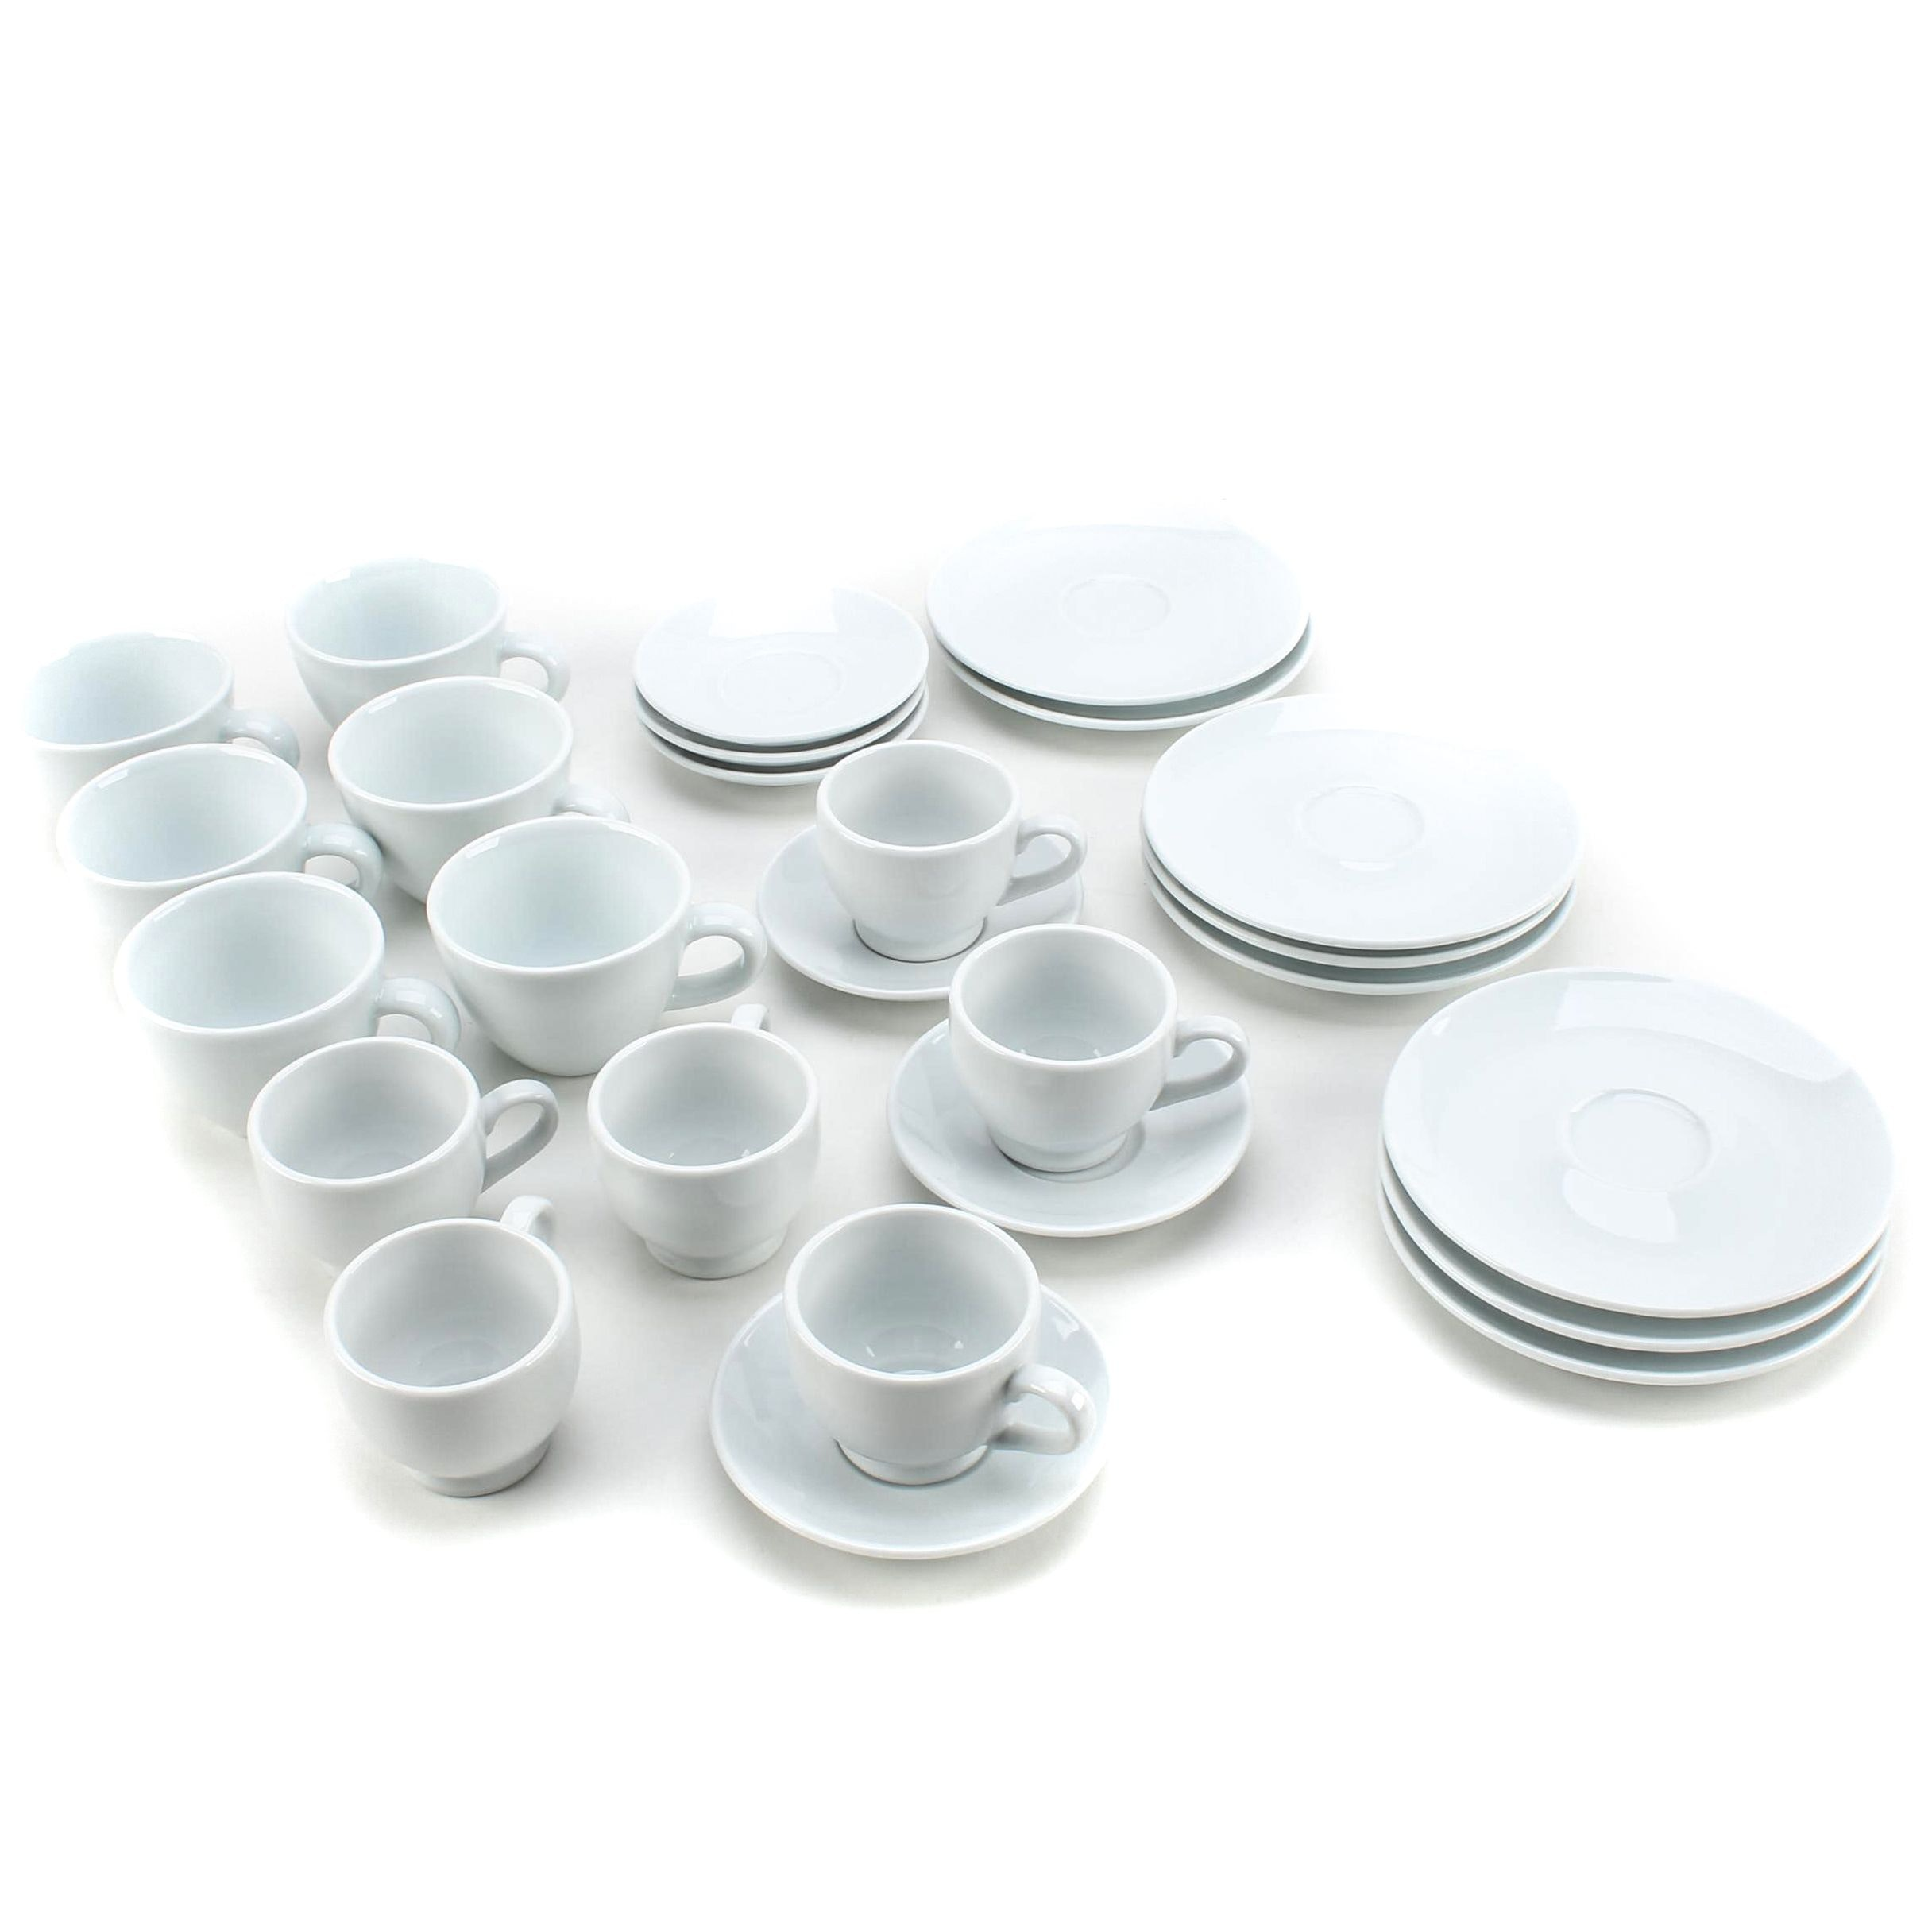 Sur La Table White Coffee Mugs, Espresso Cups and Saucers